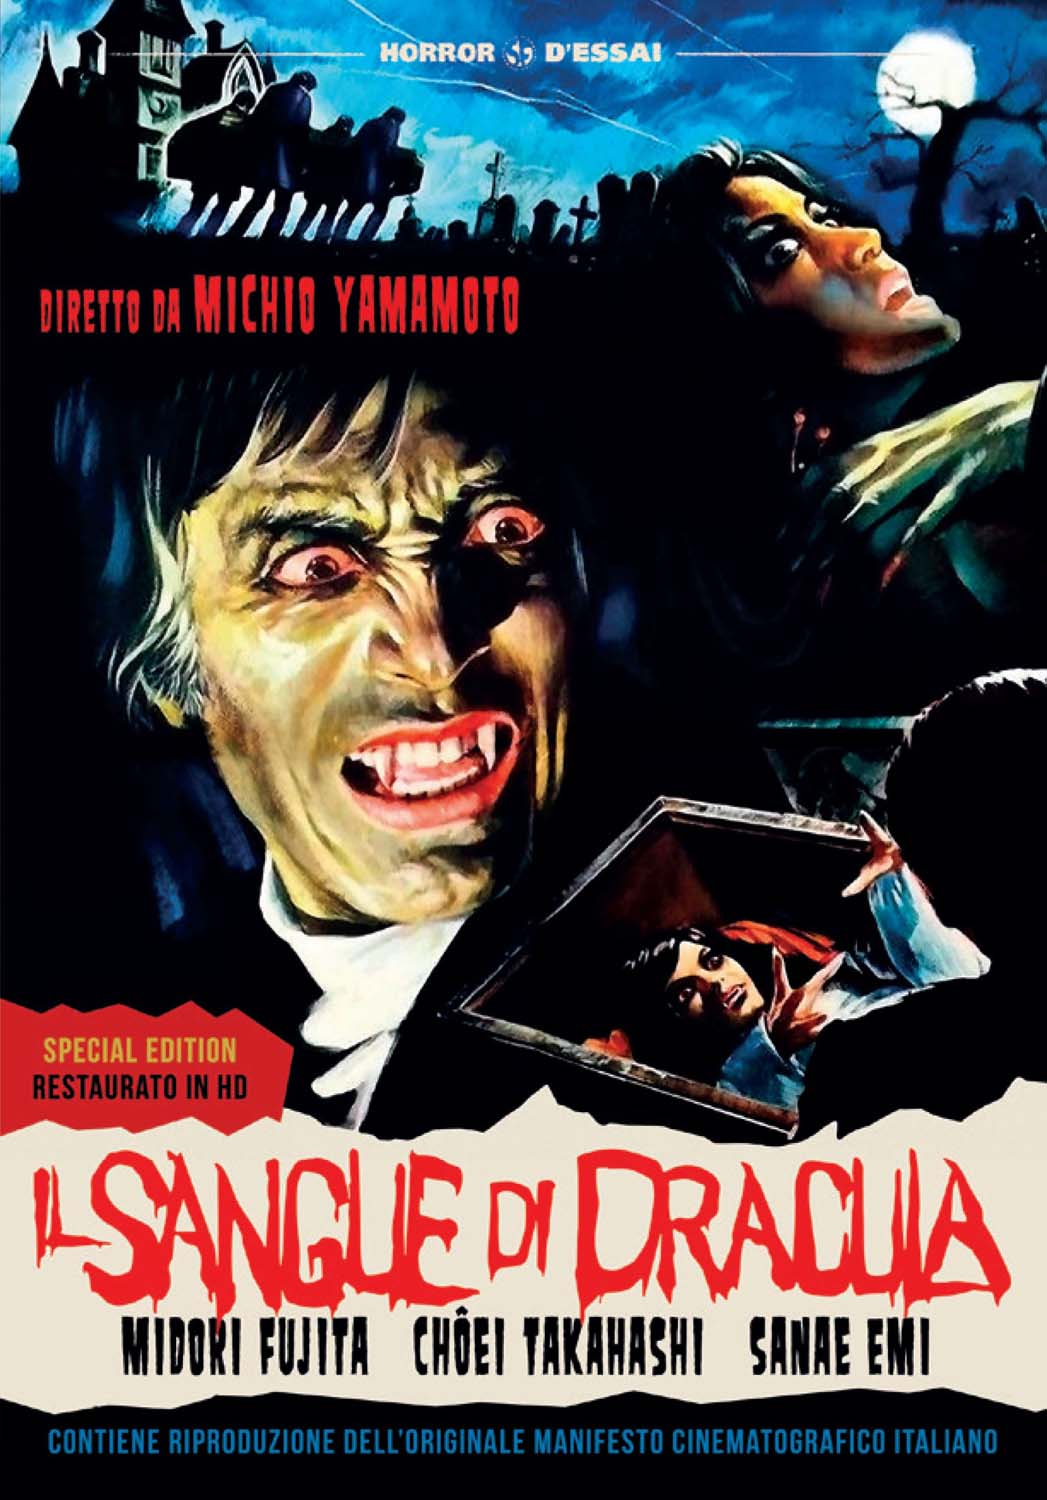 IL SANGUE DI DRACULA (RESTAURATO IN HD) (DVD+POSTER) (DVD)